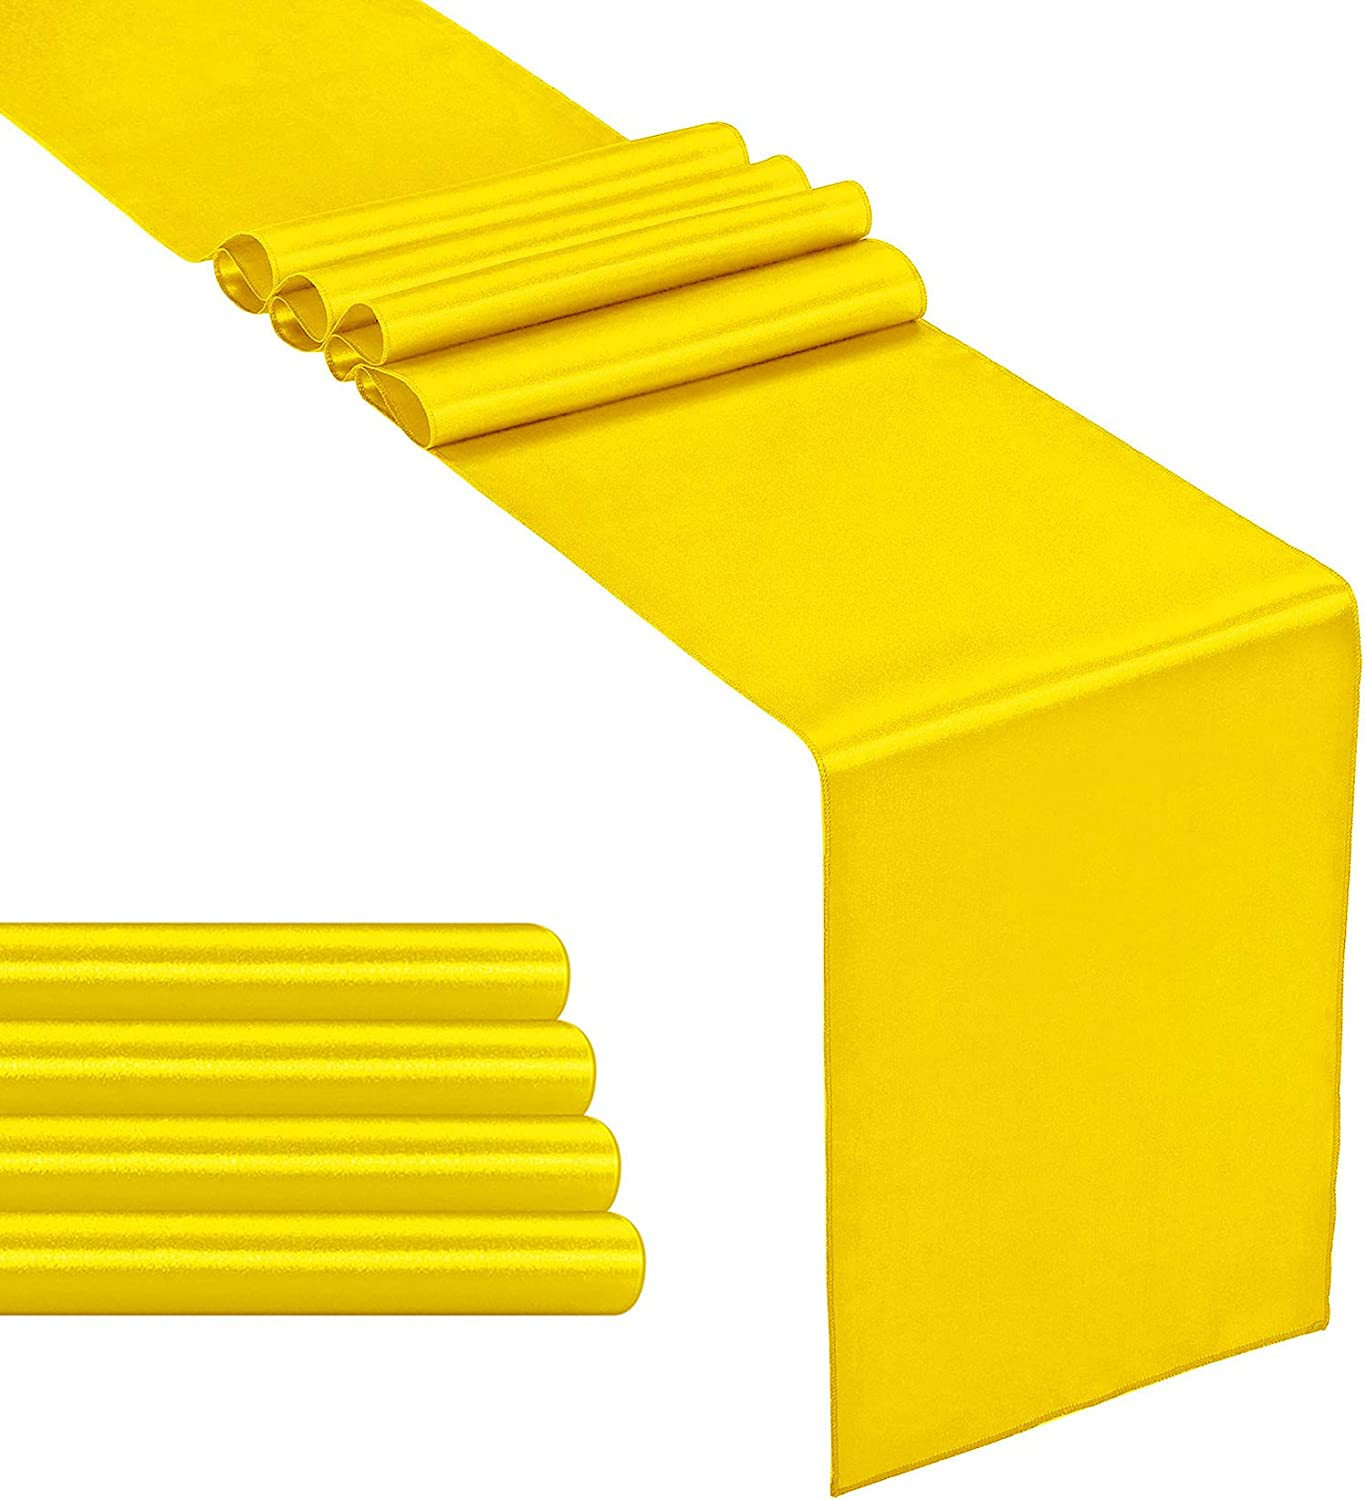 Hahuho 5-Pack Satin Table Runner Yellow 12 x 108 inches Long, Table Runners for Wedding, Birthday Parties, Banquets Decorations(5 Pack, 12x108 Inch, Yellow)